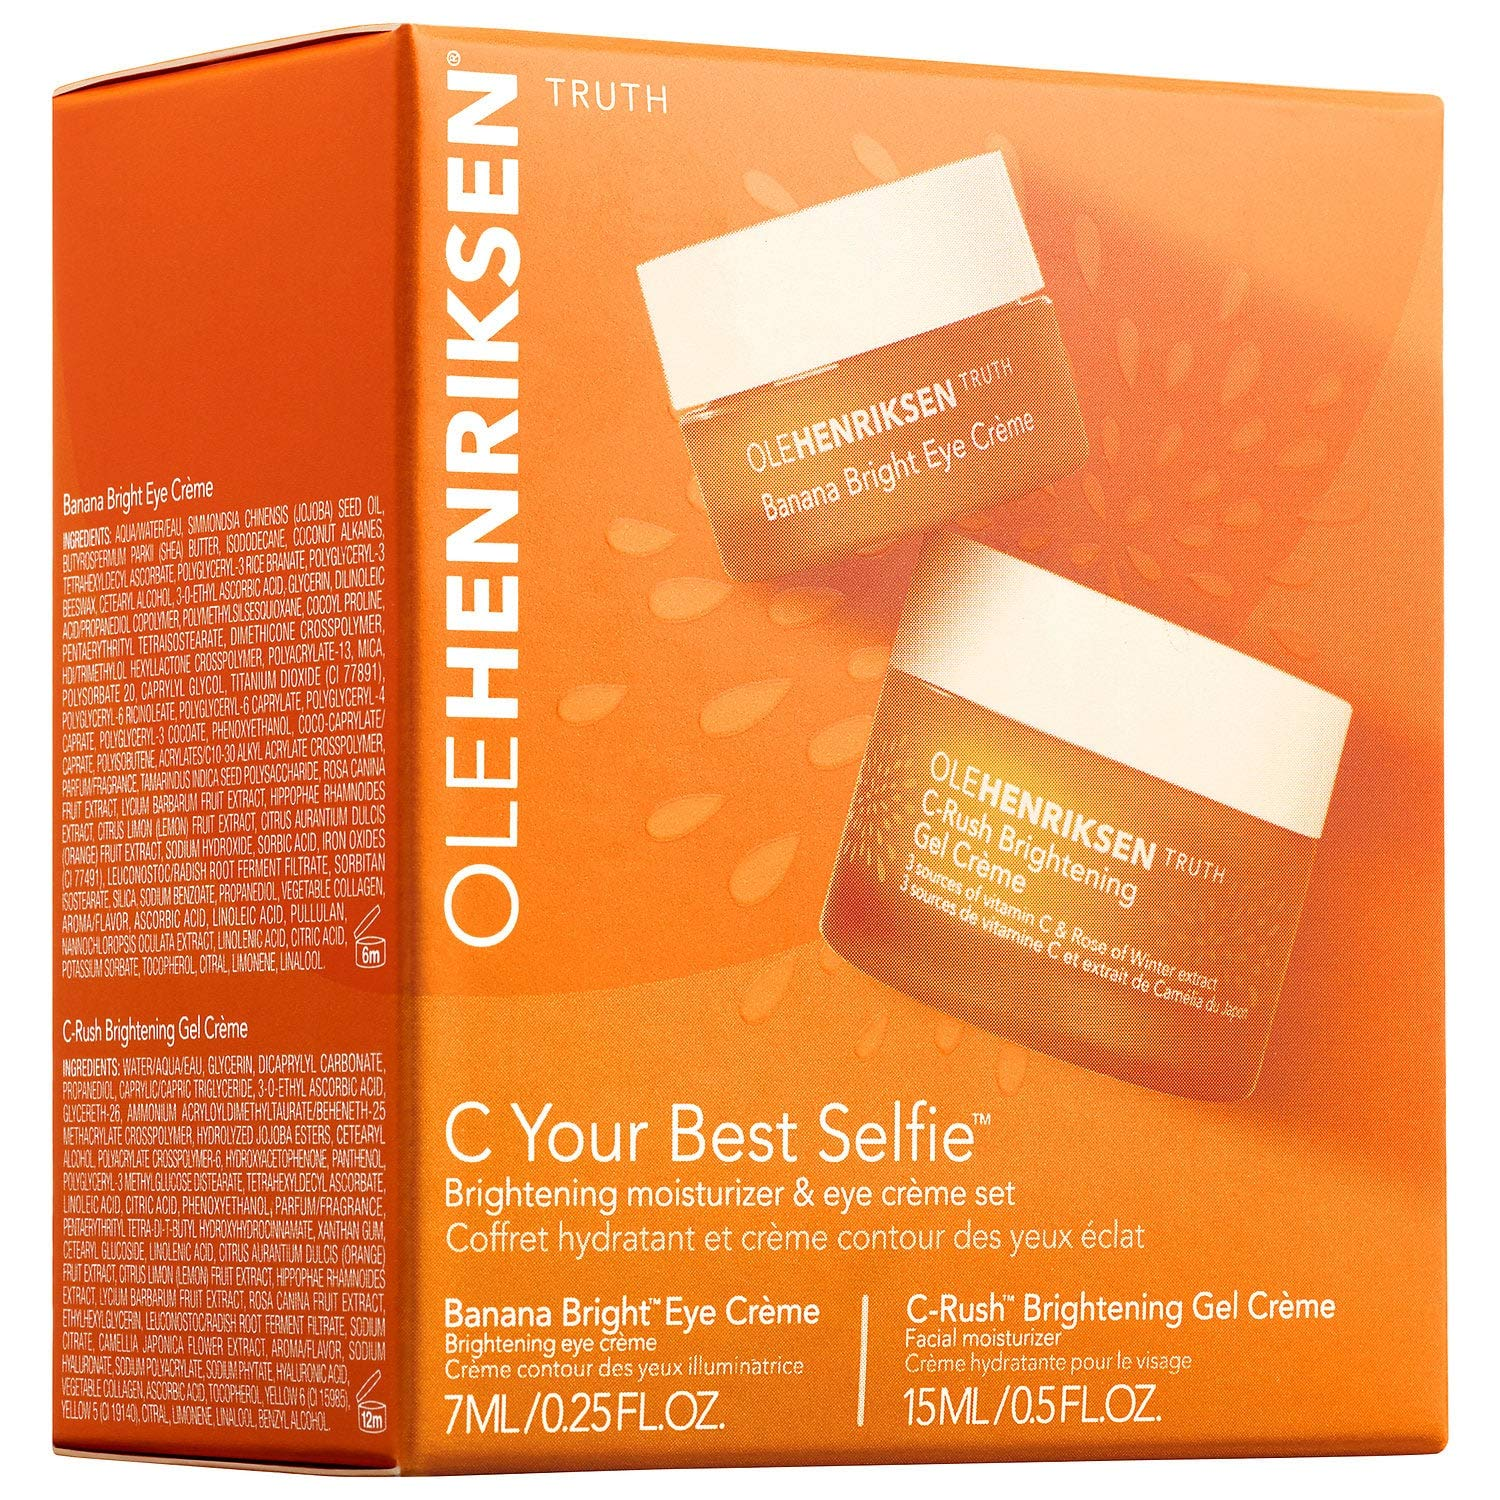 OLEHENRIKSEN C Your Best Selfie Brightening Moisturizer & Eye Crème Set 0.5 oz/ 15 mL C-Rush Brightening Gel Crème AND 7 mL Banana Bright Eye Crème: Beauty